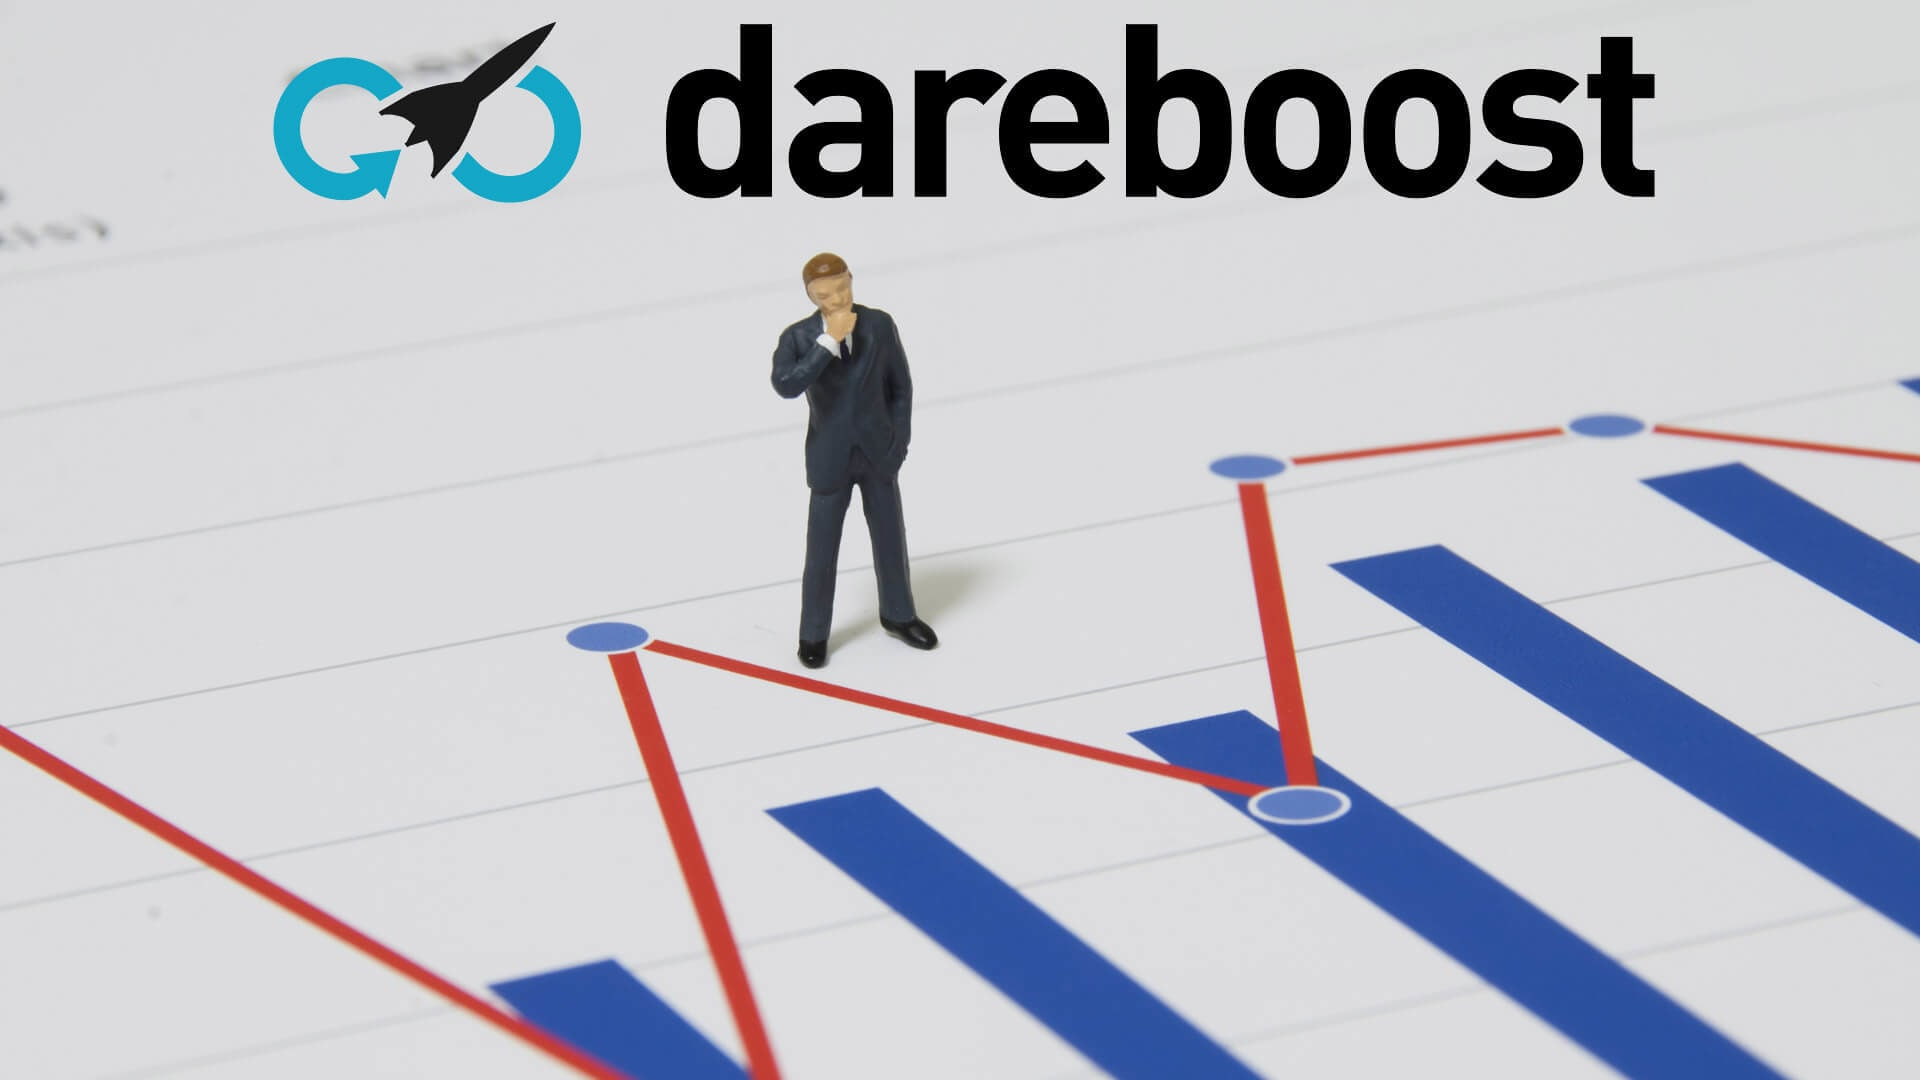 DareBoost: Analyse your web pages performances and improve them